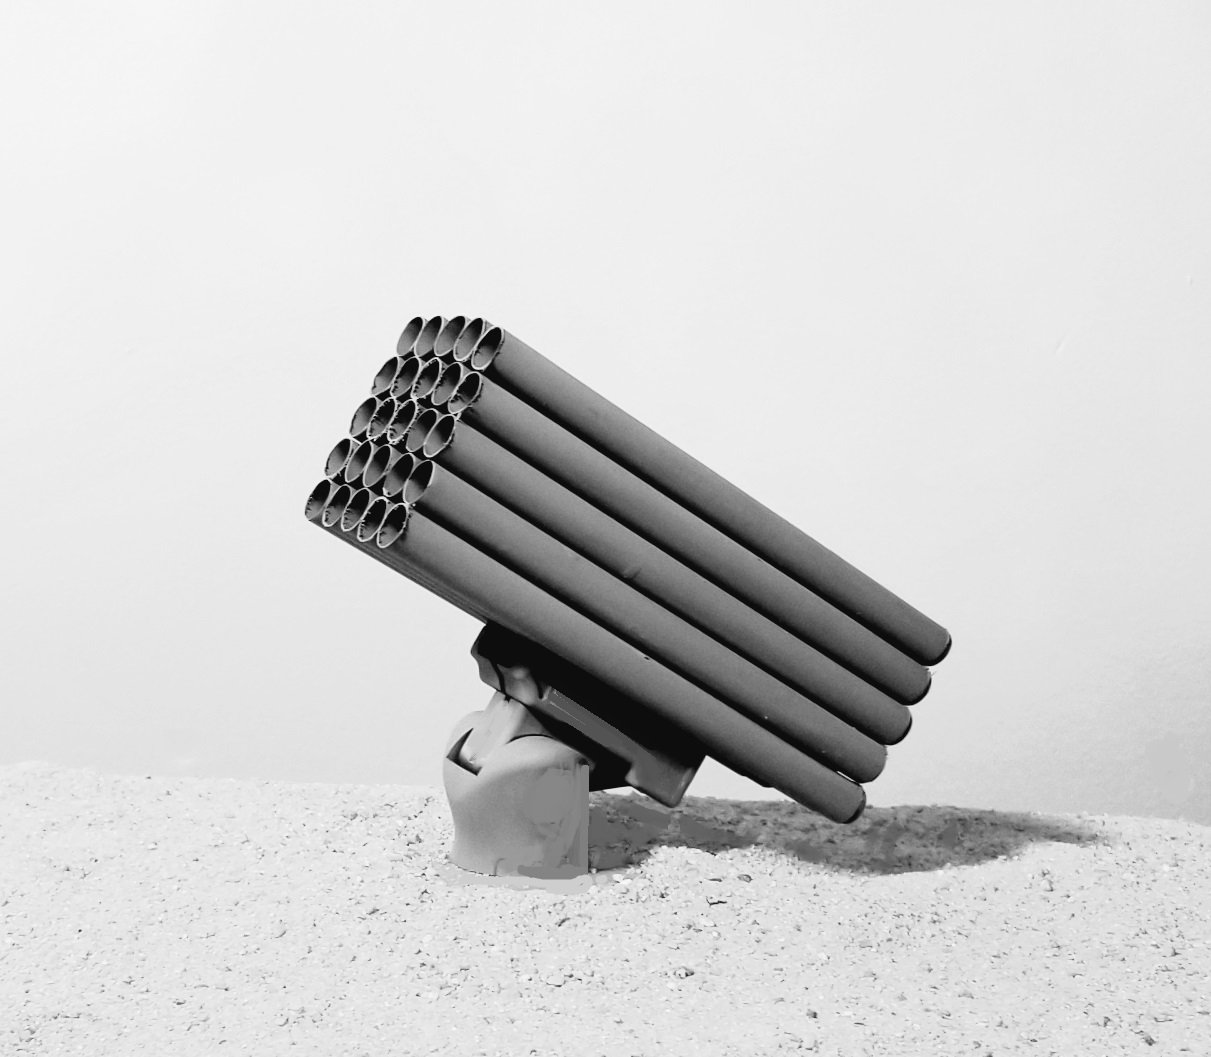 Tube-Fired Launcher